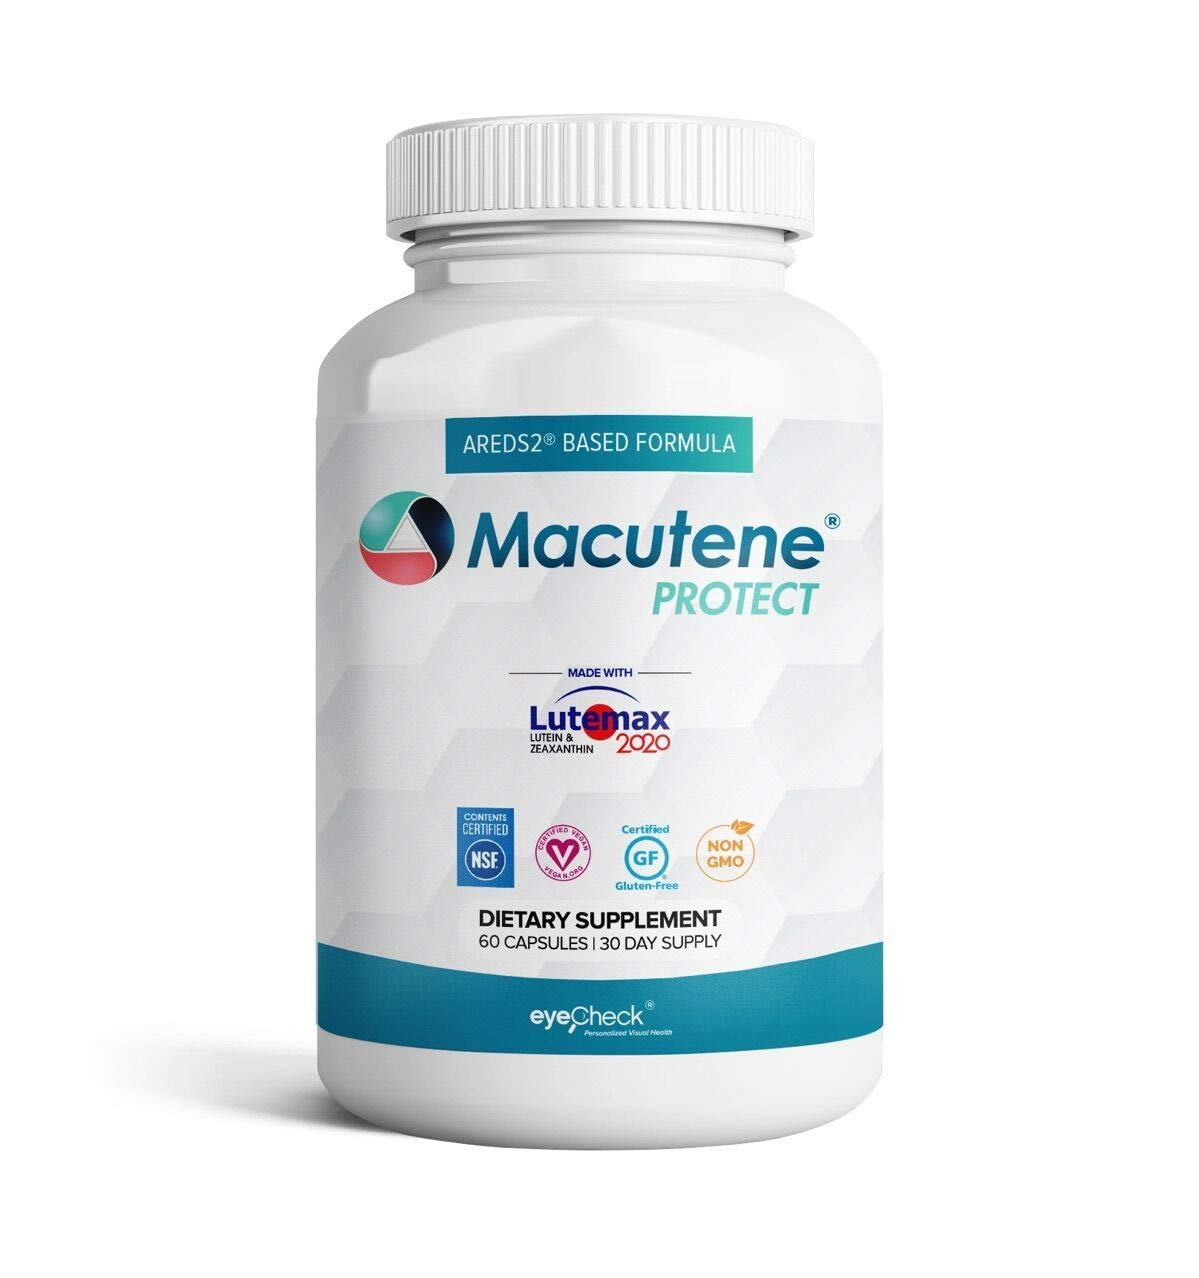 Natural Eye Health Vitamins with Bilberry Zeaxanthin Lutein - Macular Support Supplement, Formula Based On AREDS2® Clinical Trials Plus Carotenoids Quercetin EGCG - Macutene® Protect (60 Capsules) by Eyecheck